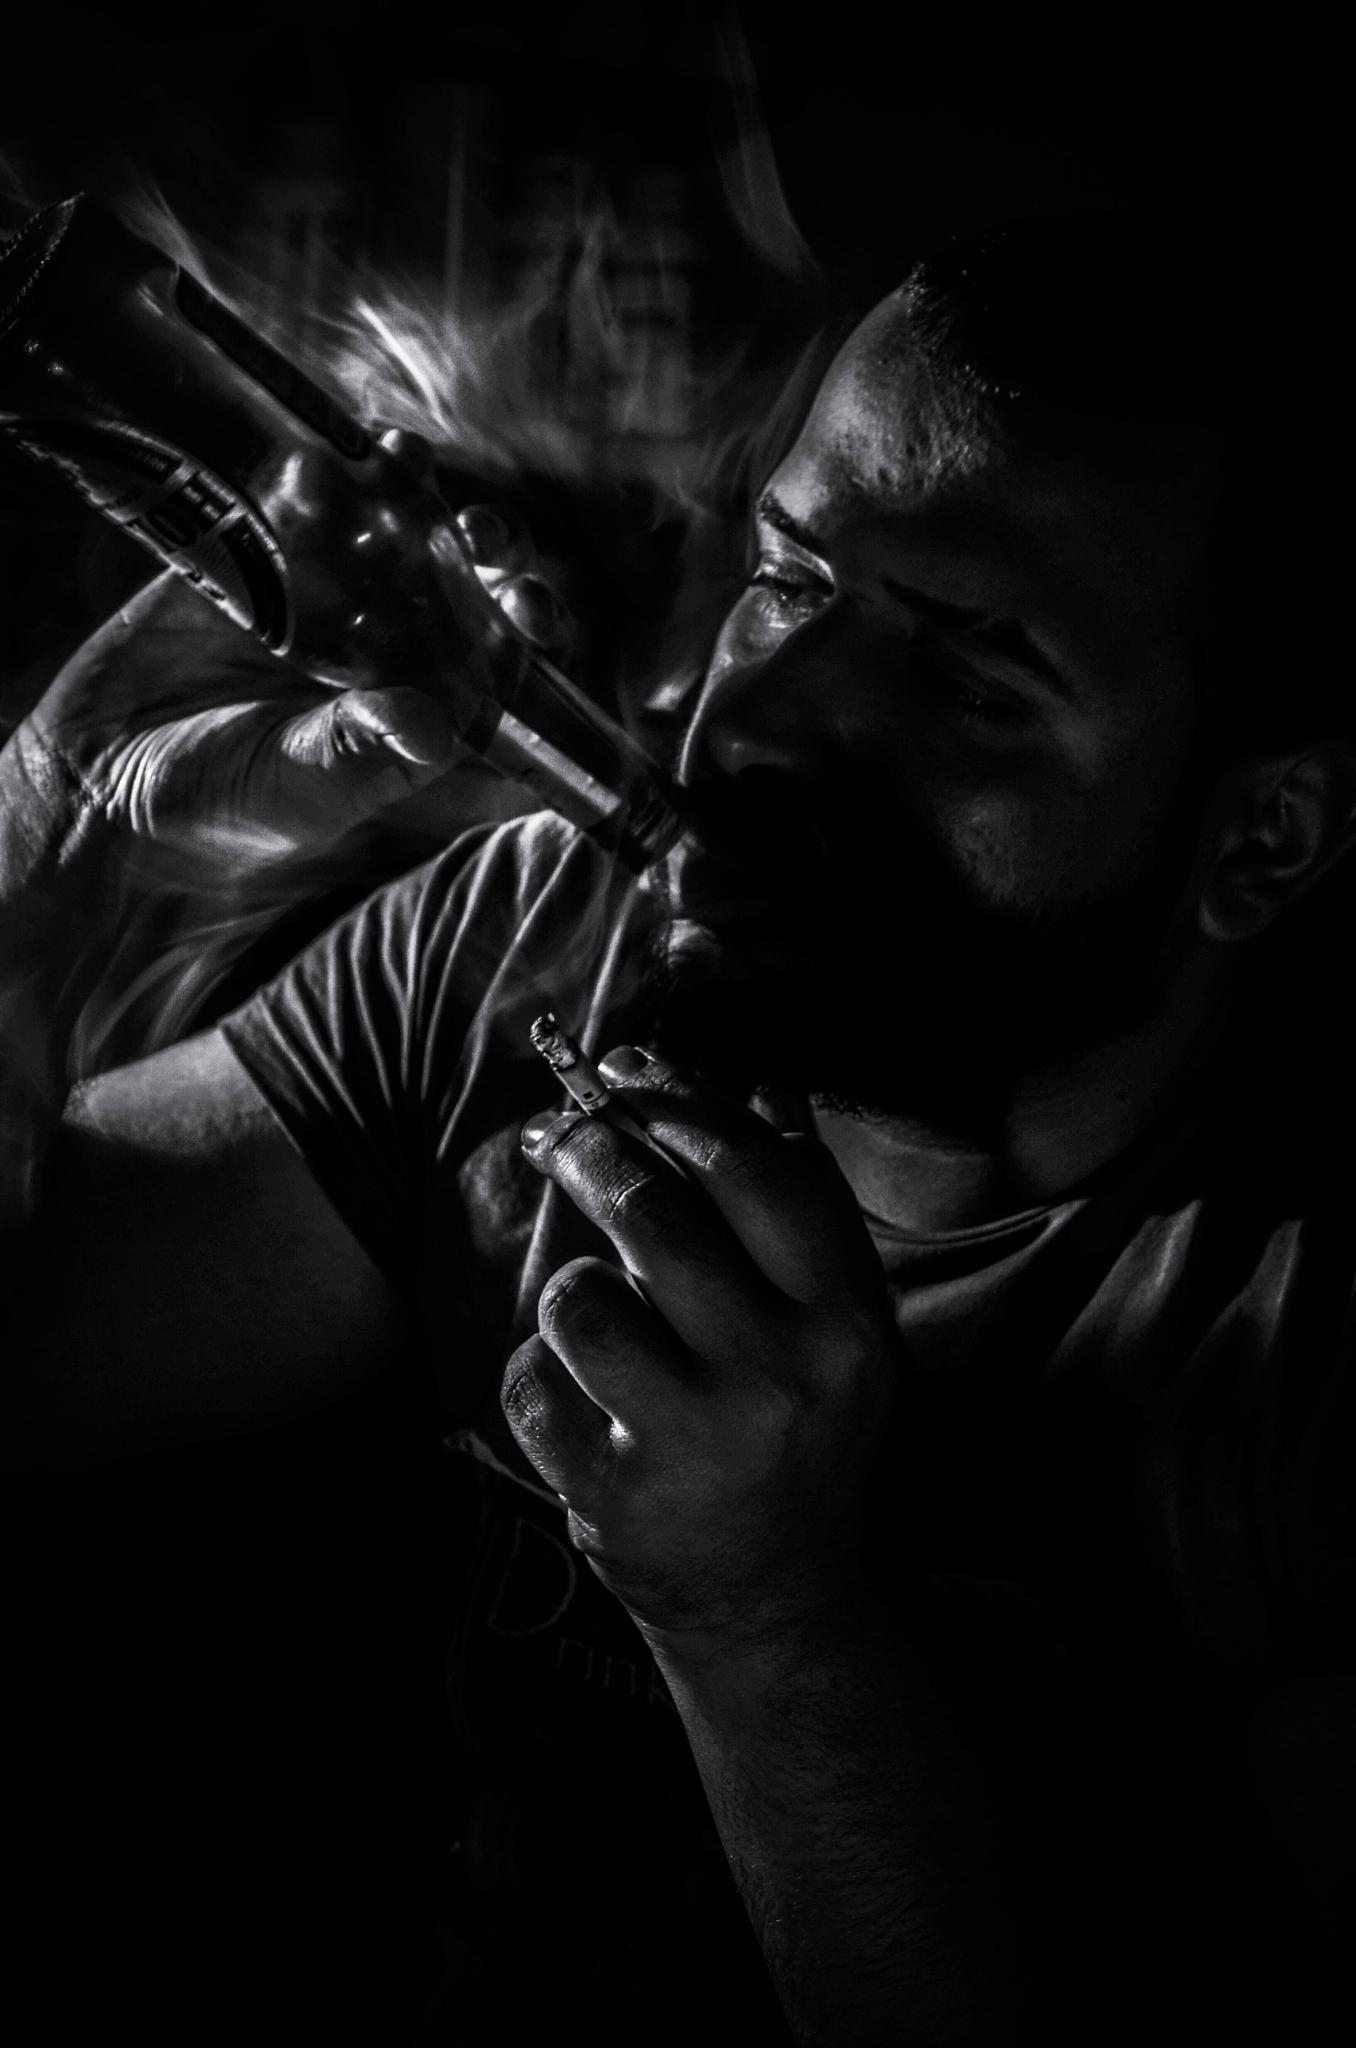 My Friend smoking & drinking by Ahmed Ayyad Al-Shemarry